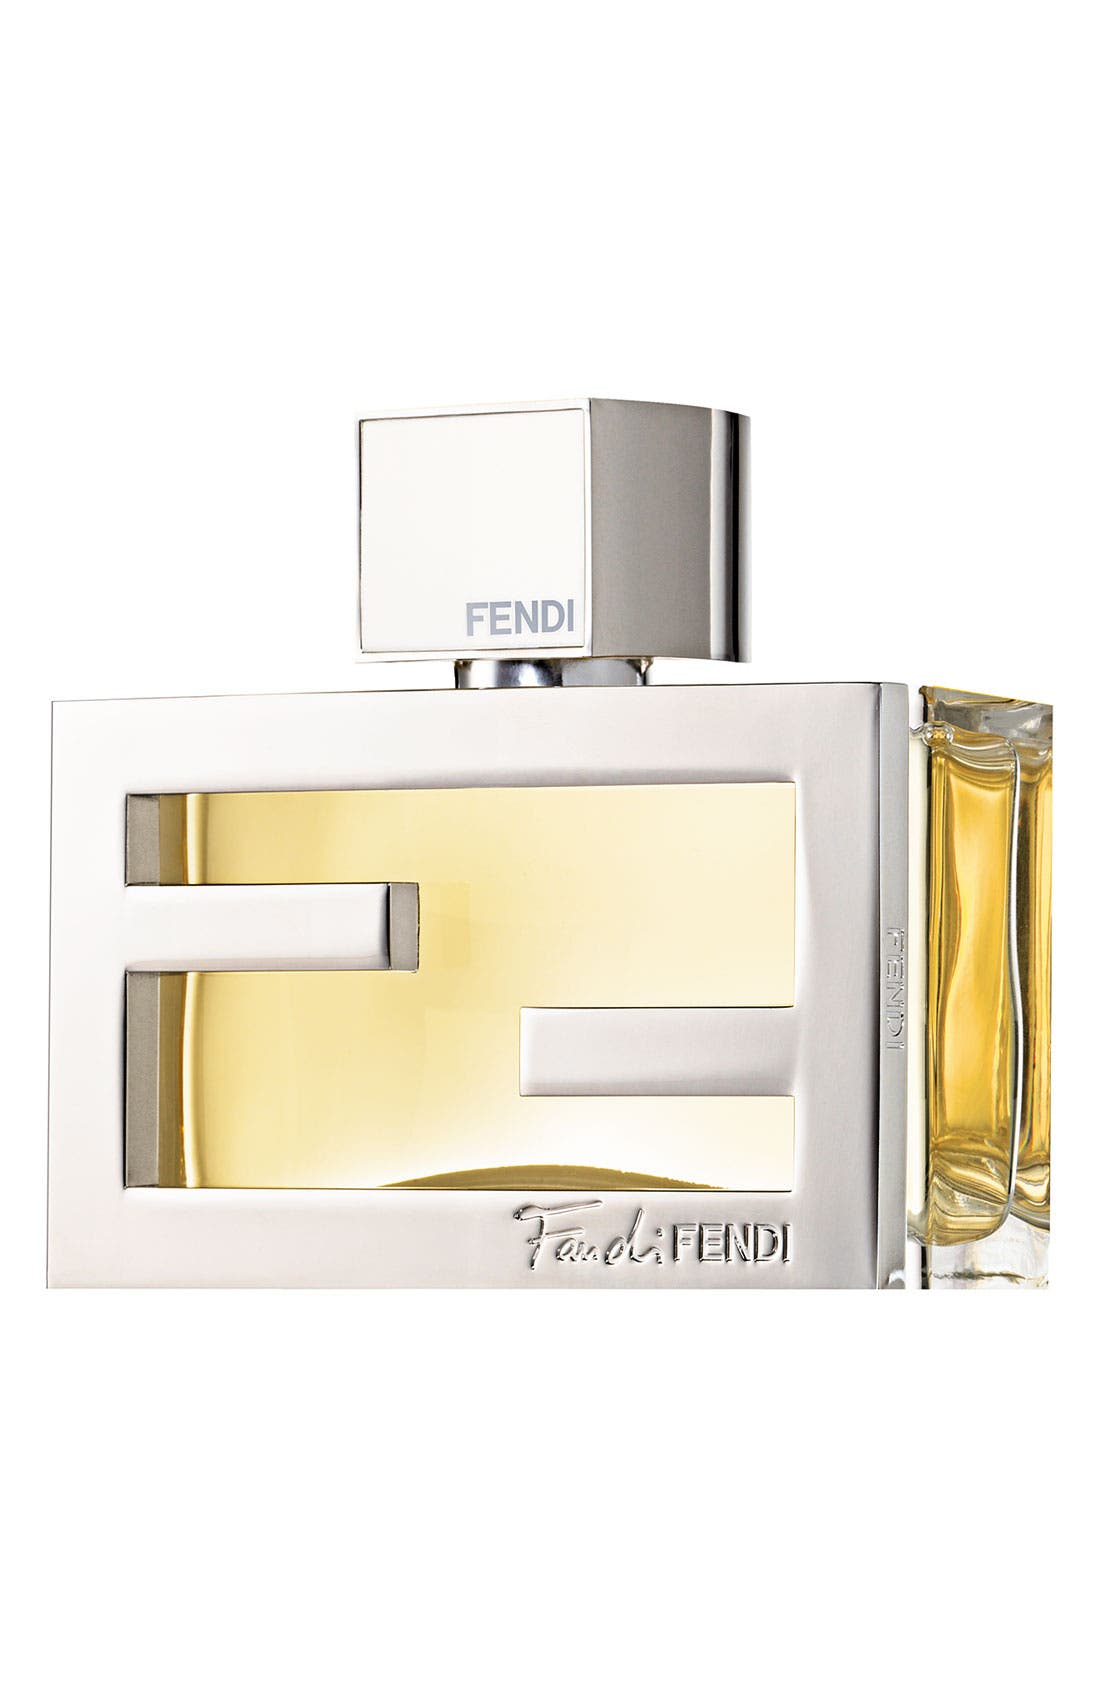 'Fan di Fendi' Eau de Toilette,                             Main thumbnail 1, color,                             000